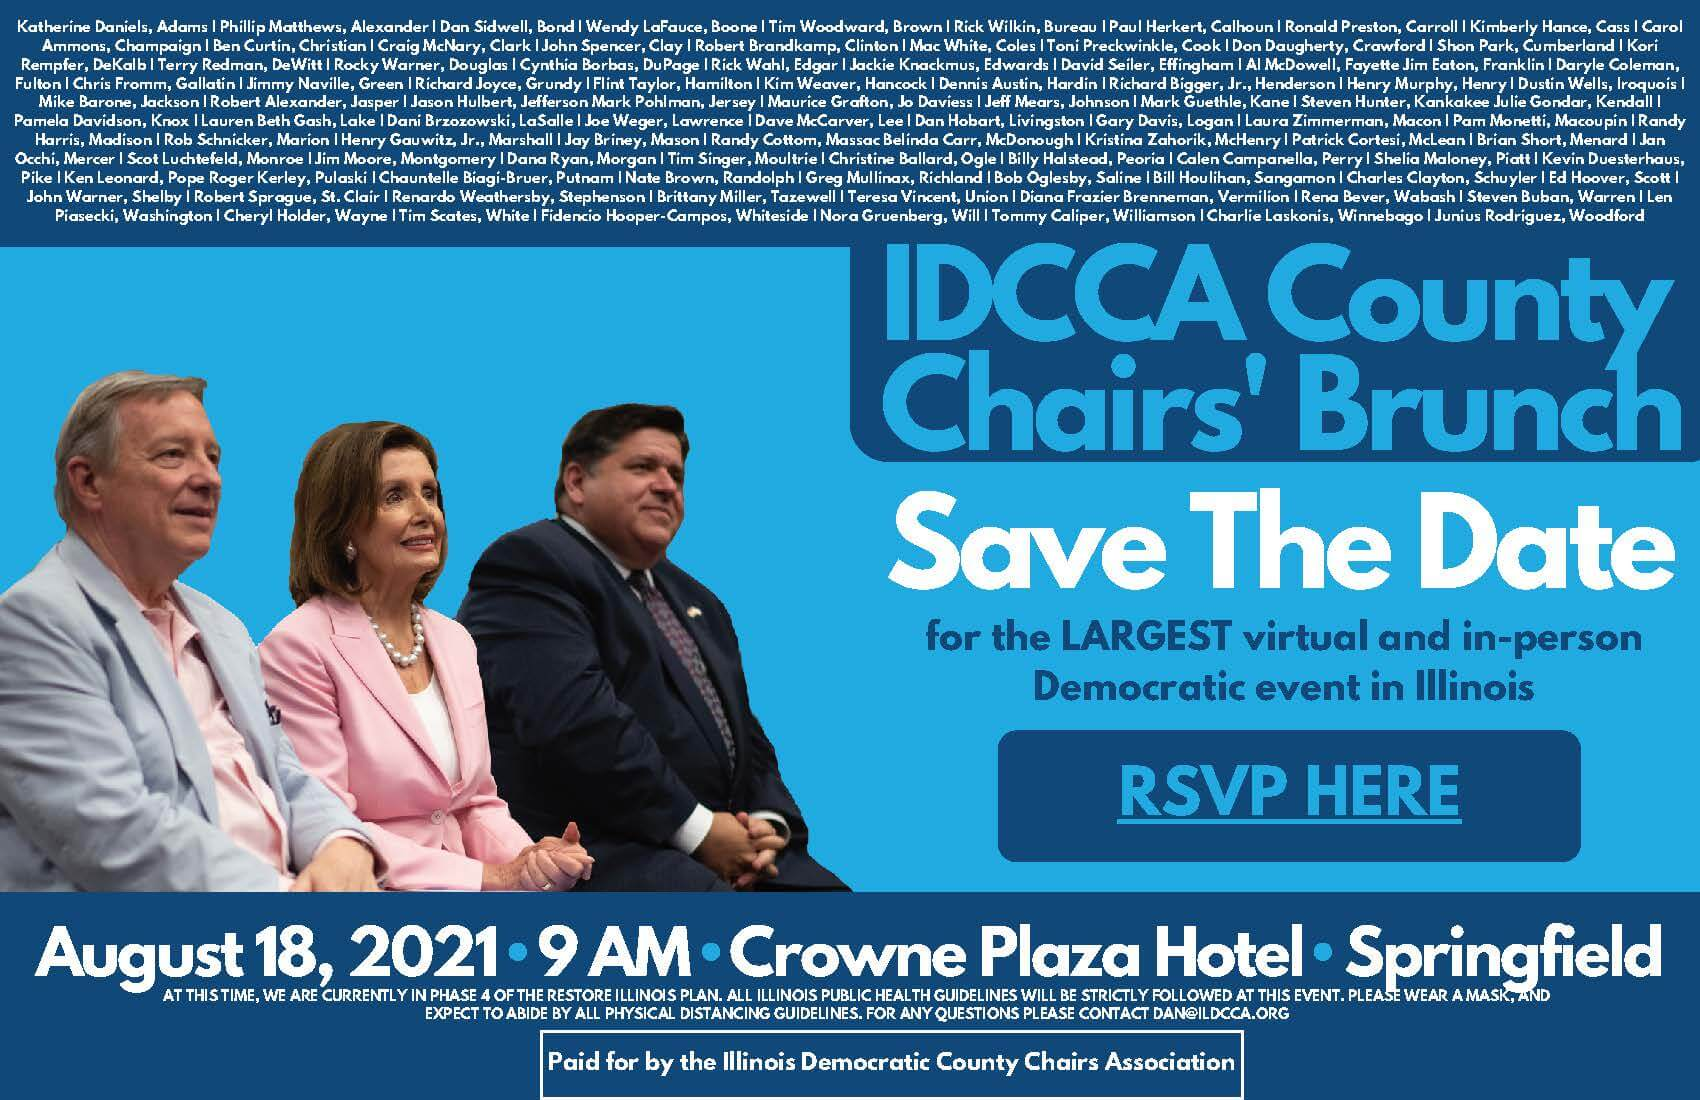 IDCCA to host hybrid in-person County Chairs' Brunch